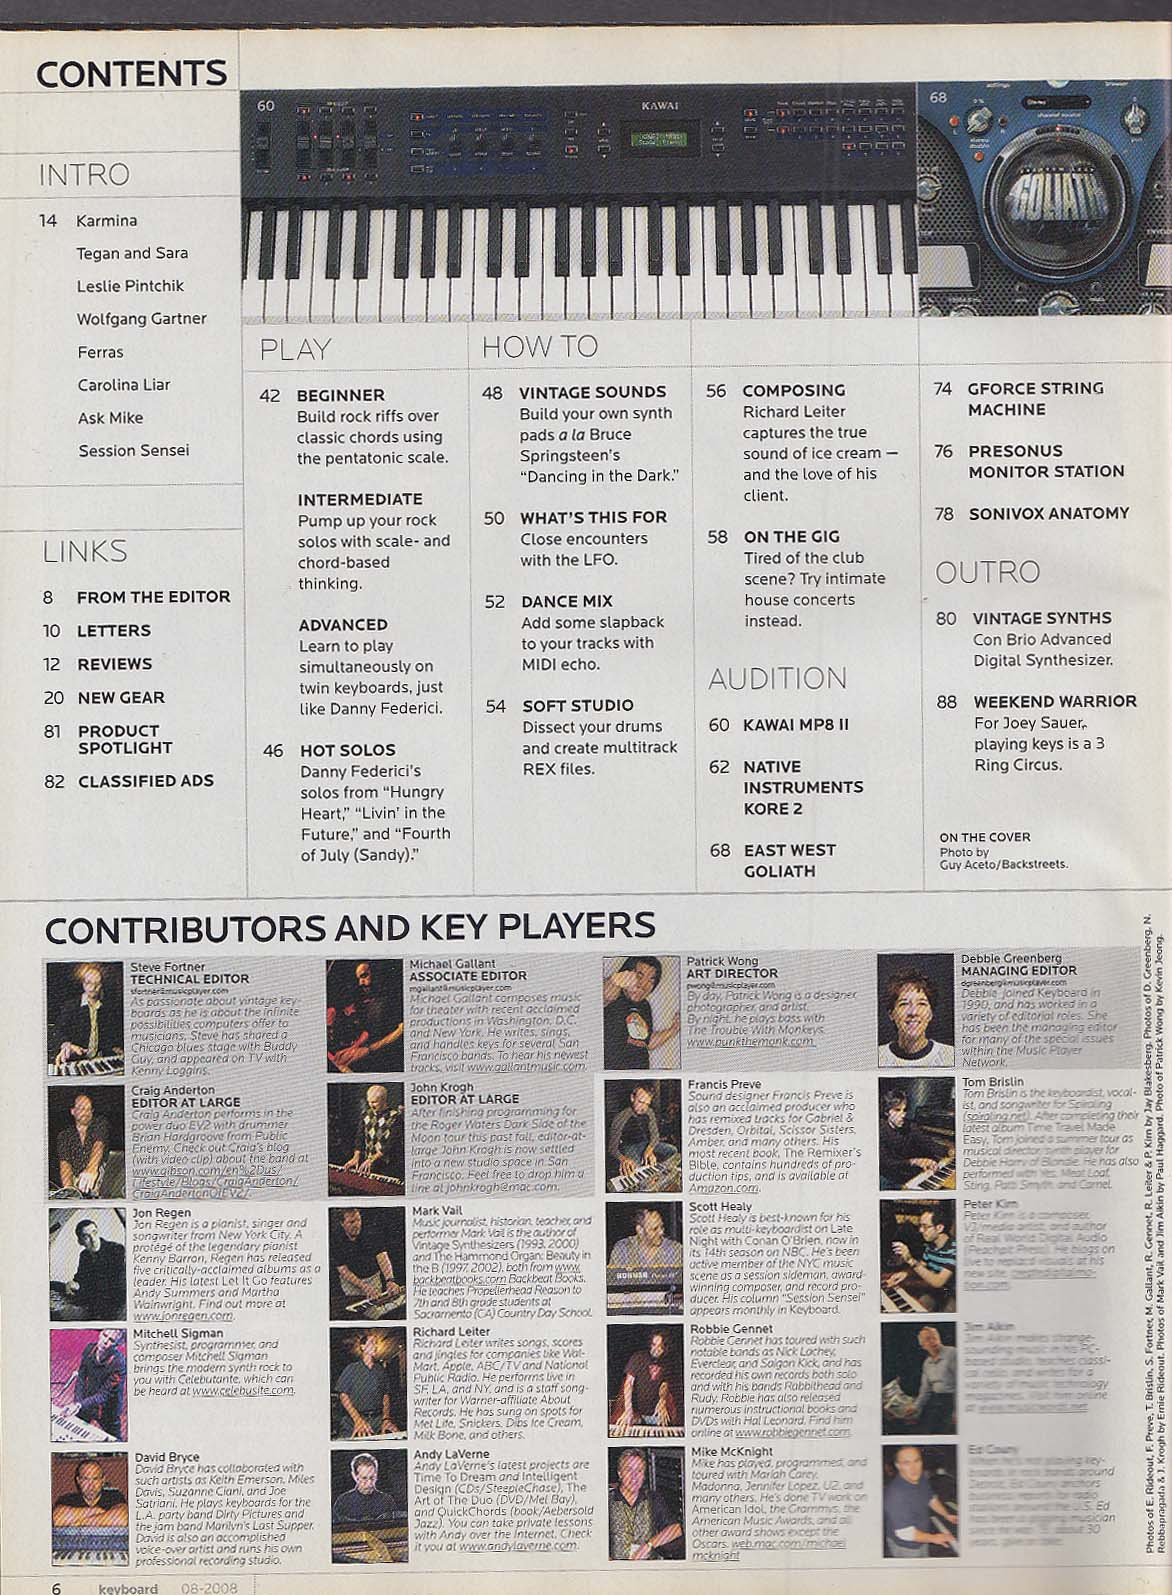 KEYBOARD Danny Federici Bruce Springsteen Mike Paris T Lavitz ++ 8 2008